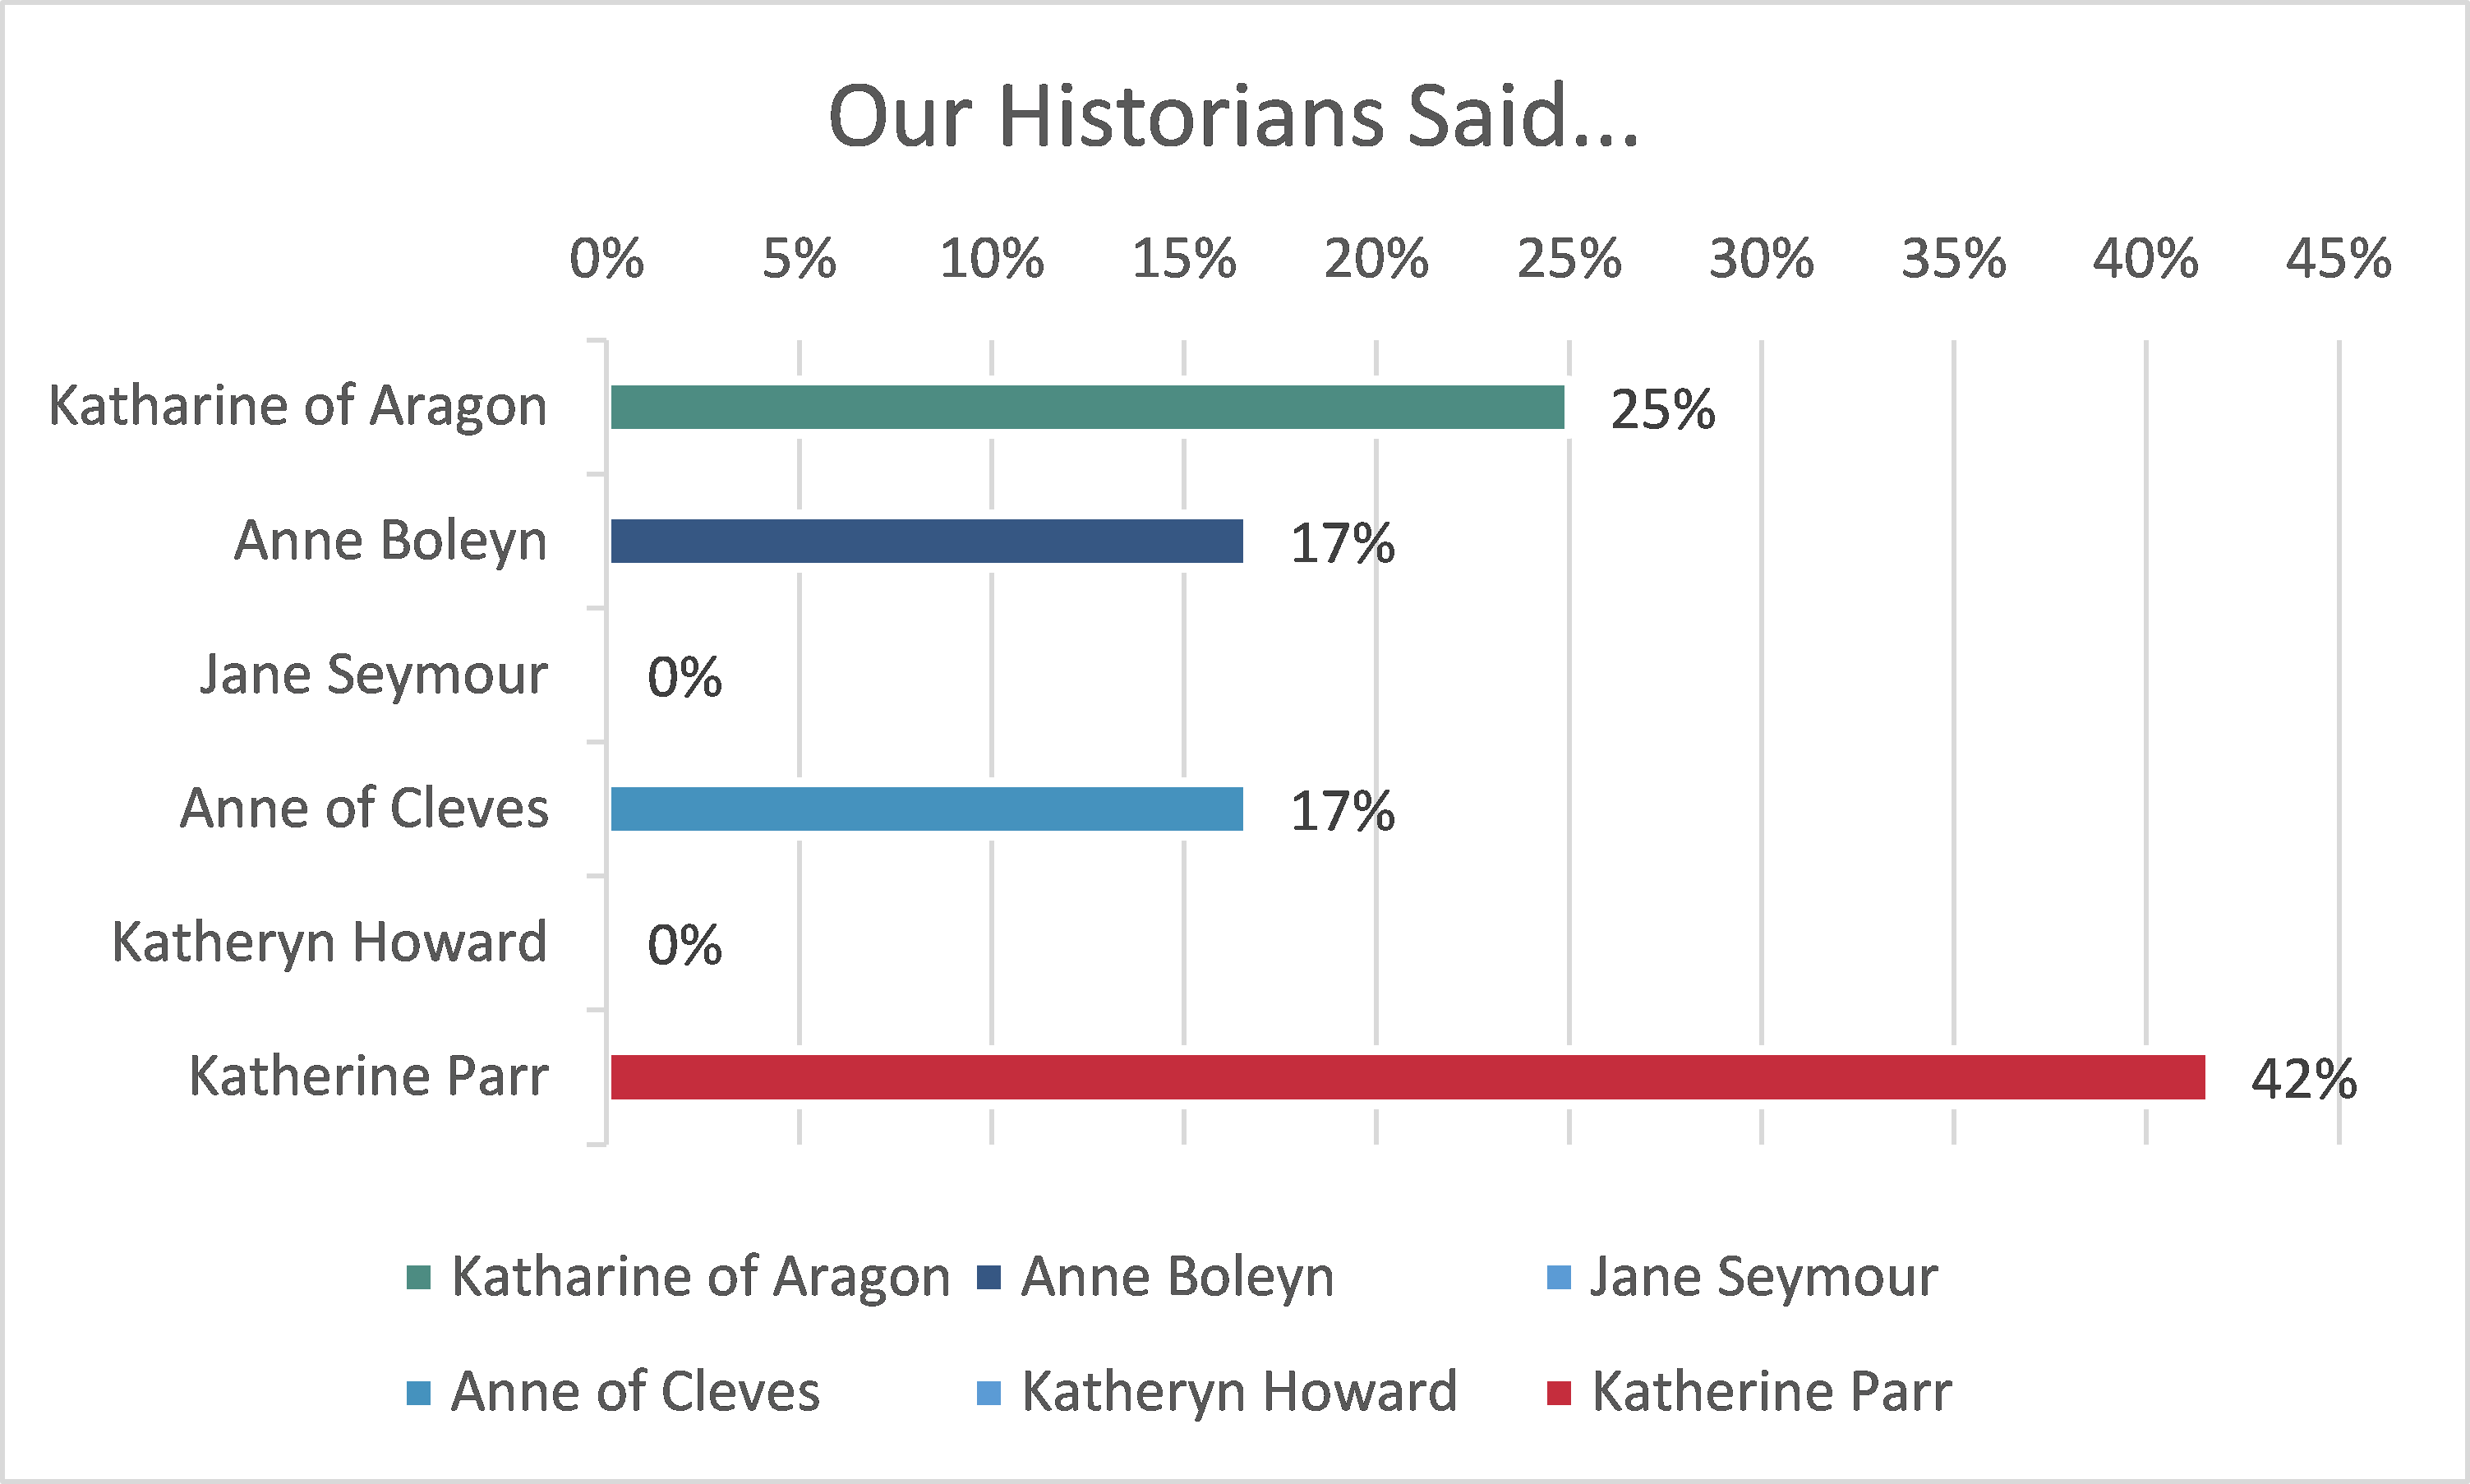 Six Wives Survey Historian Results